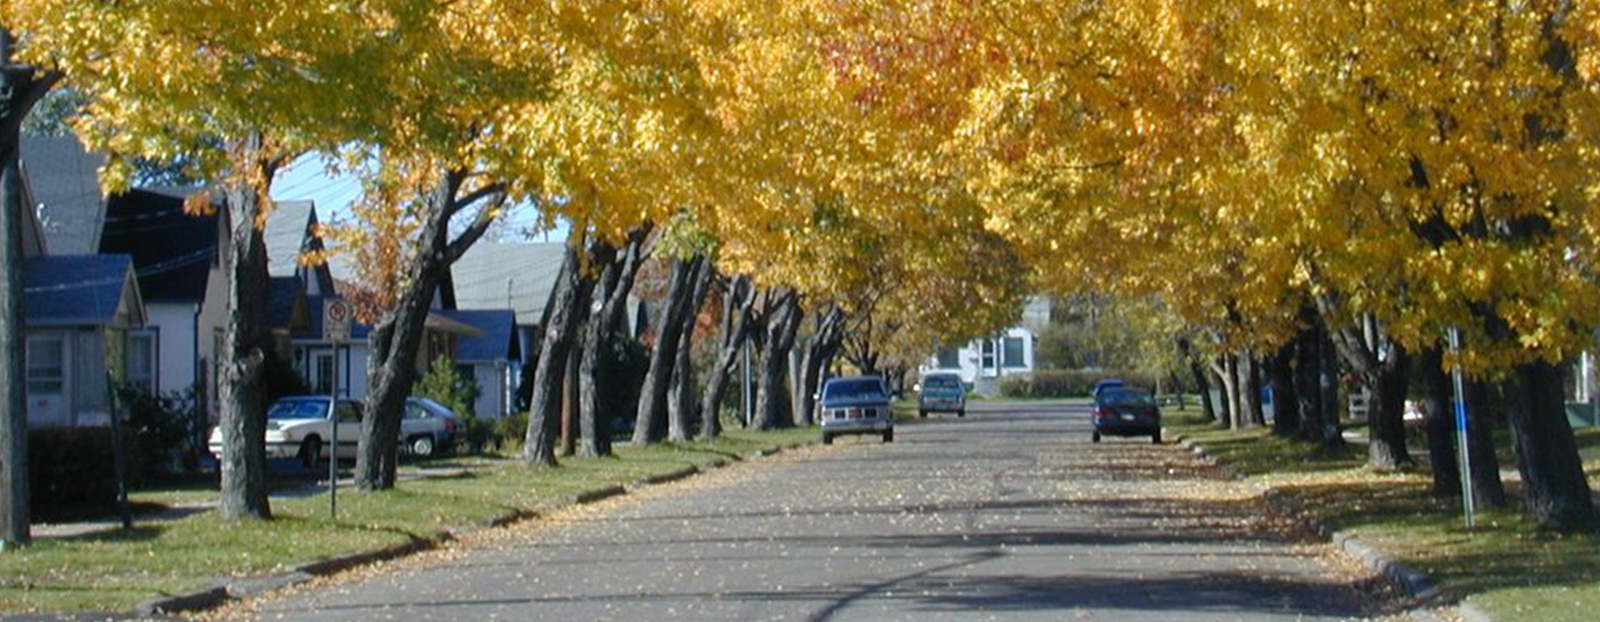 yello leaves on trees lining road